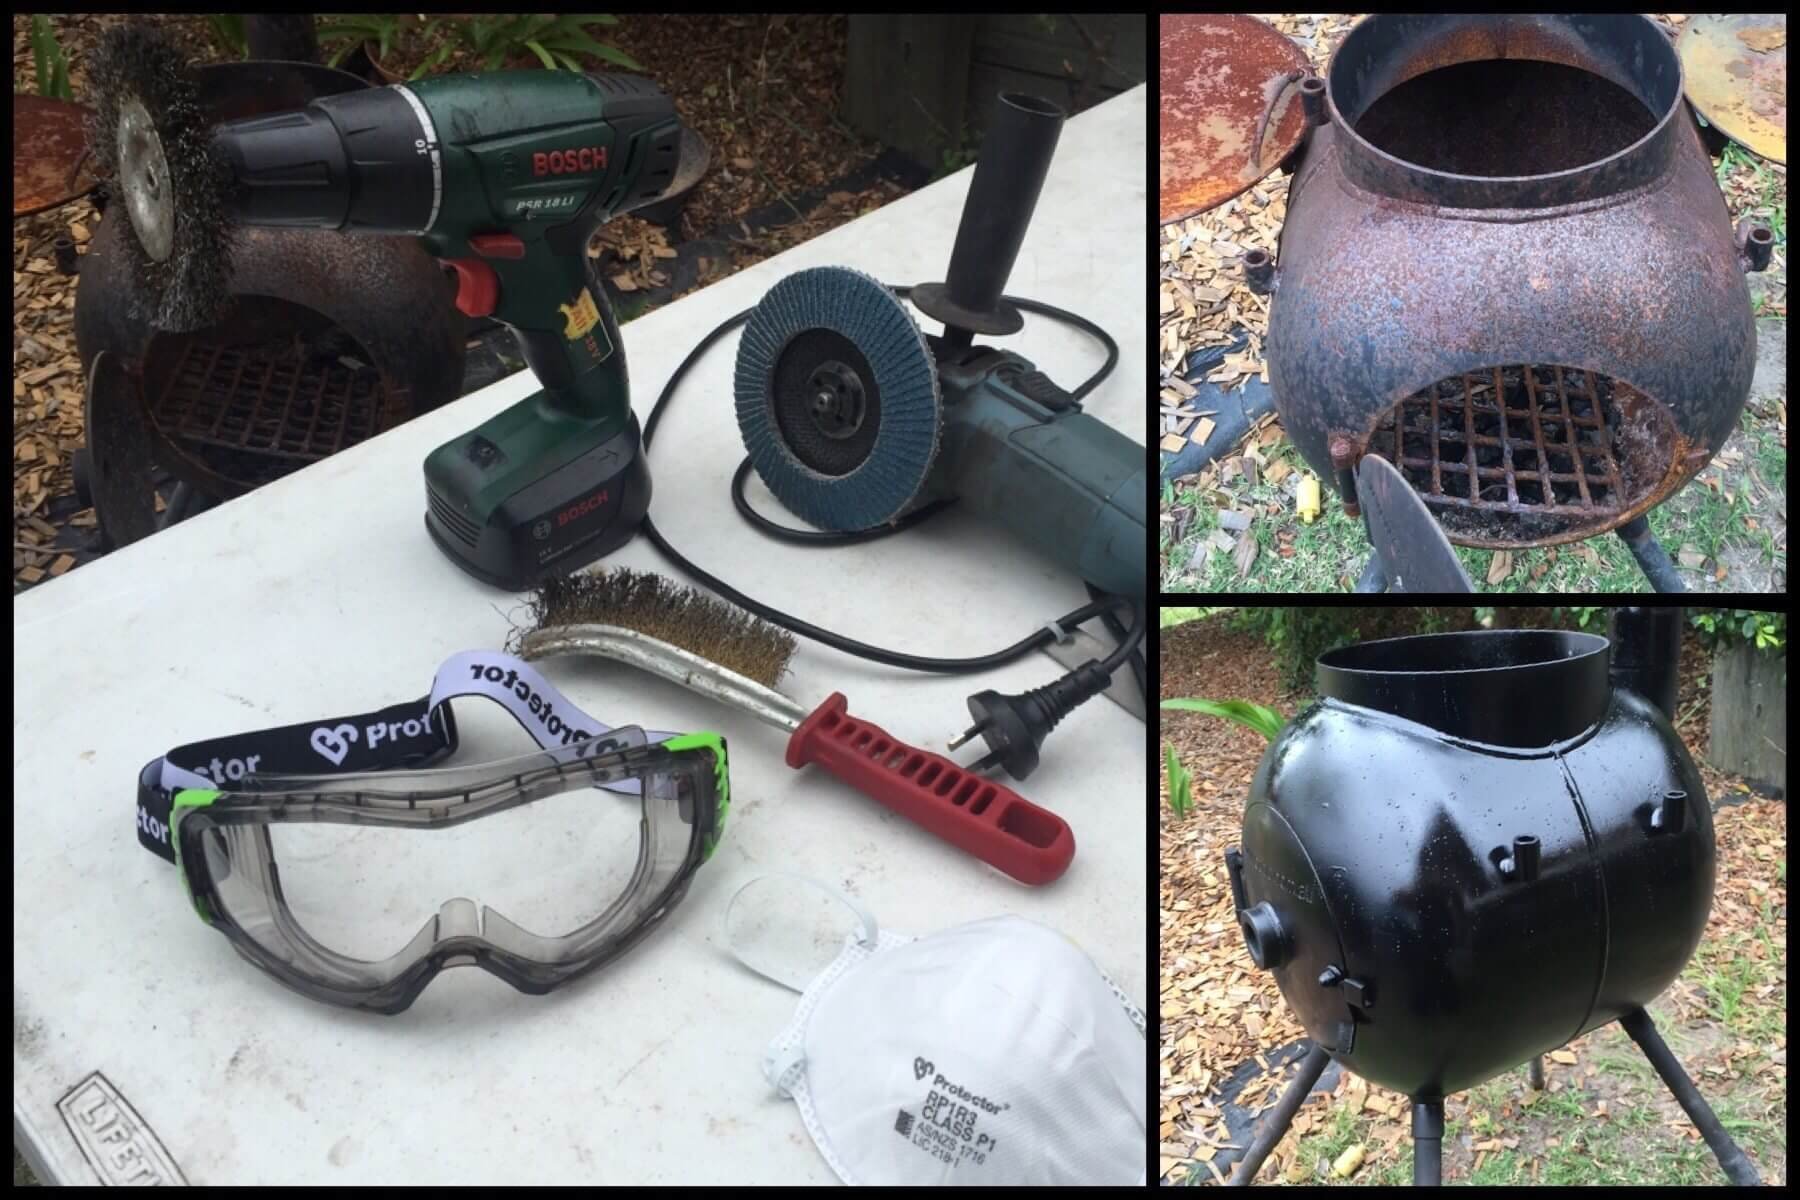 Cleaning and repainting a rusty Ozpig using hand tools